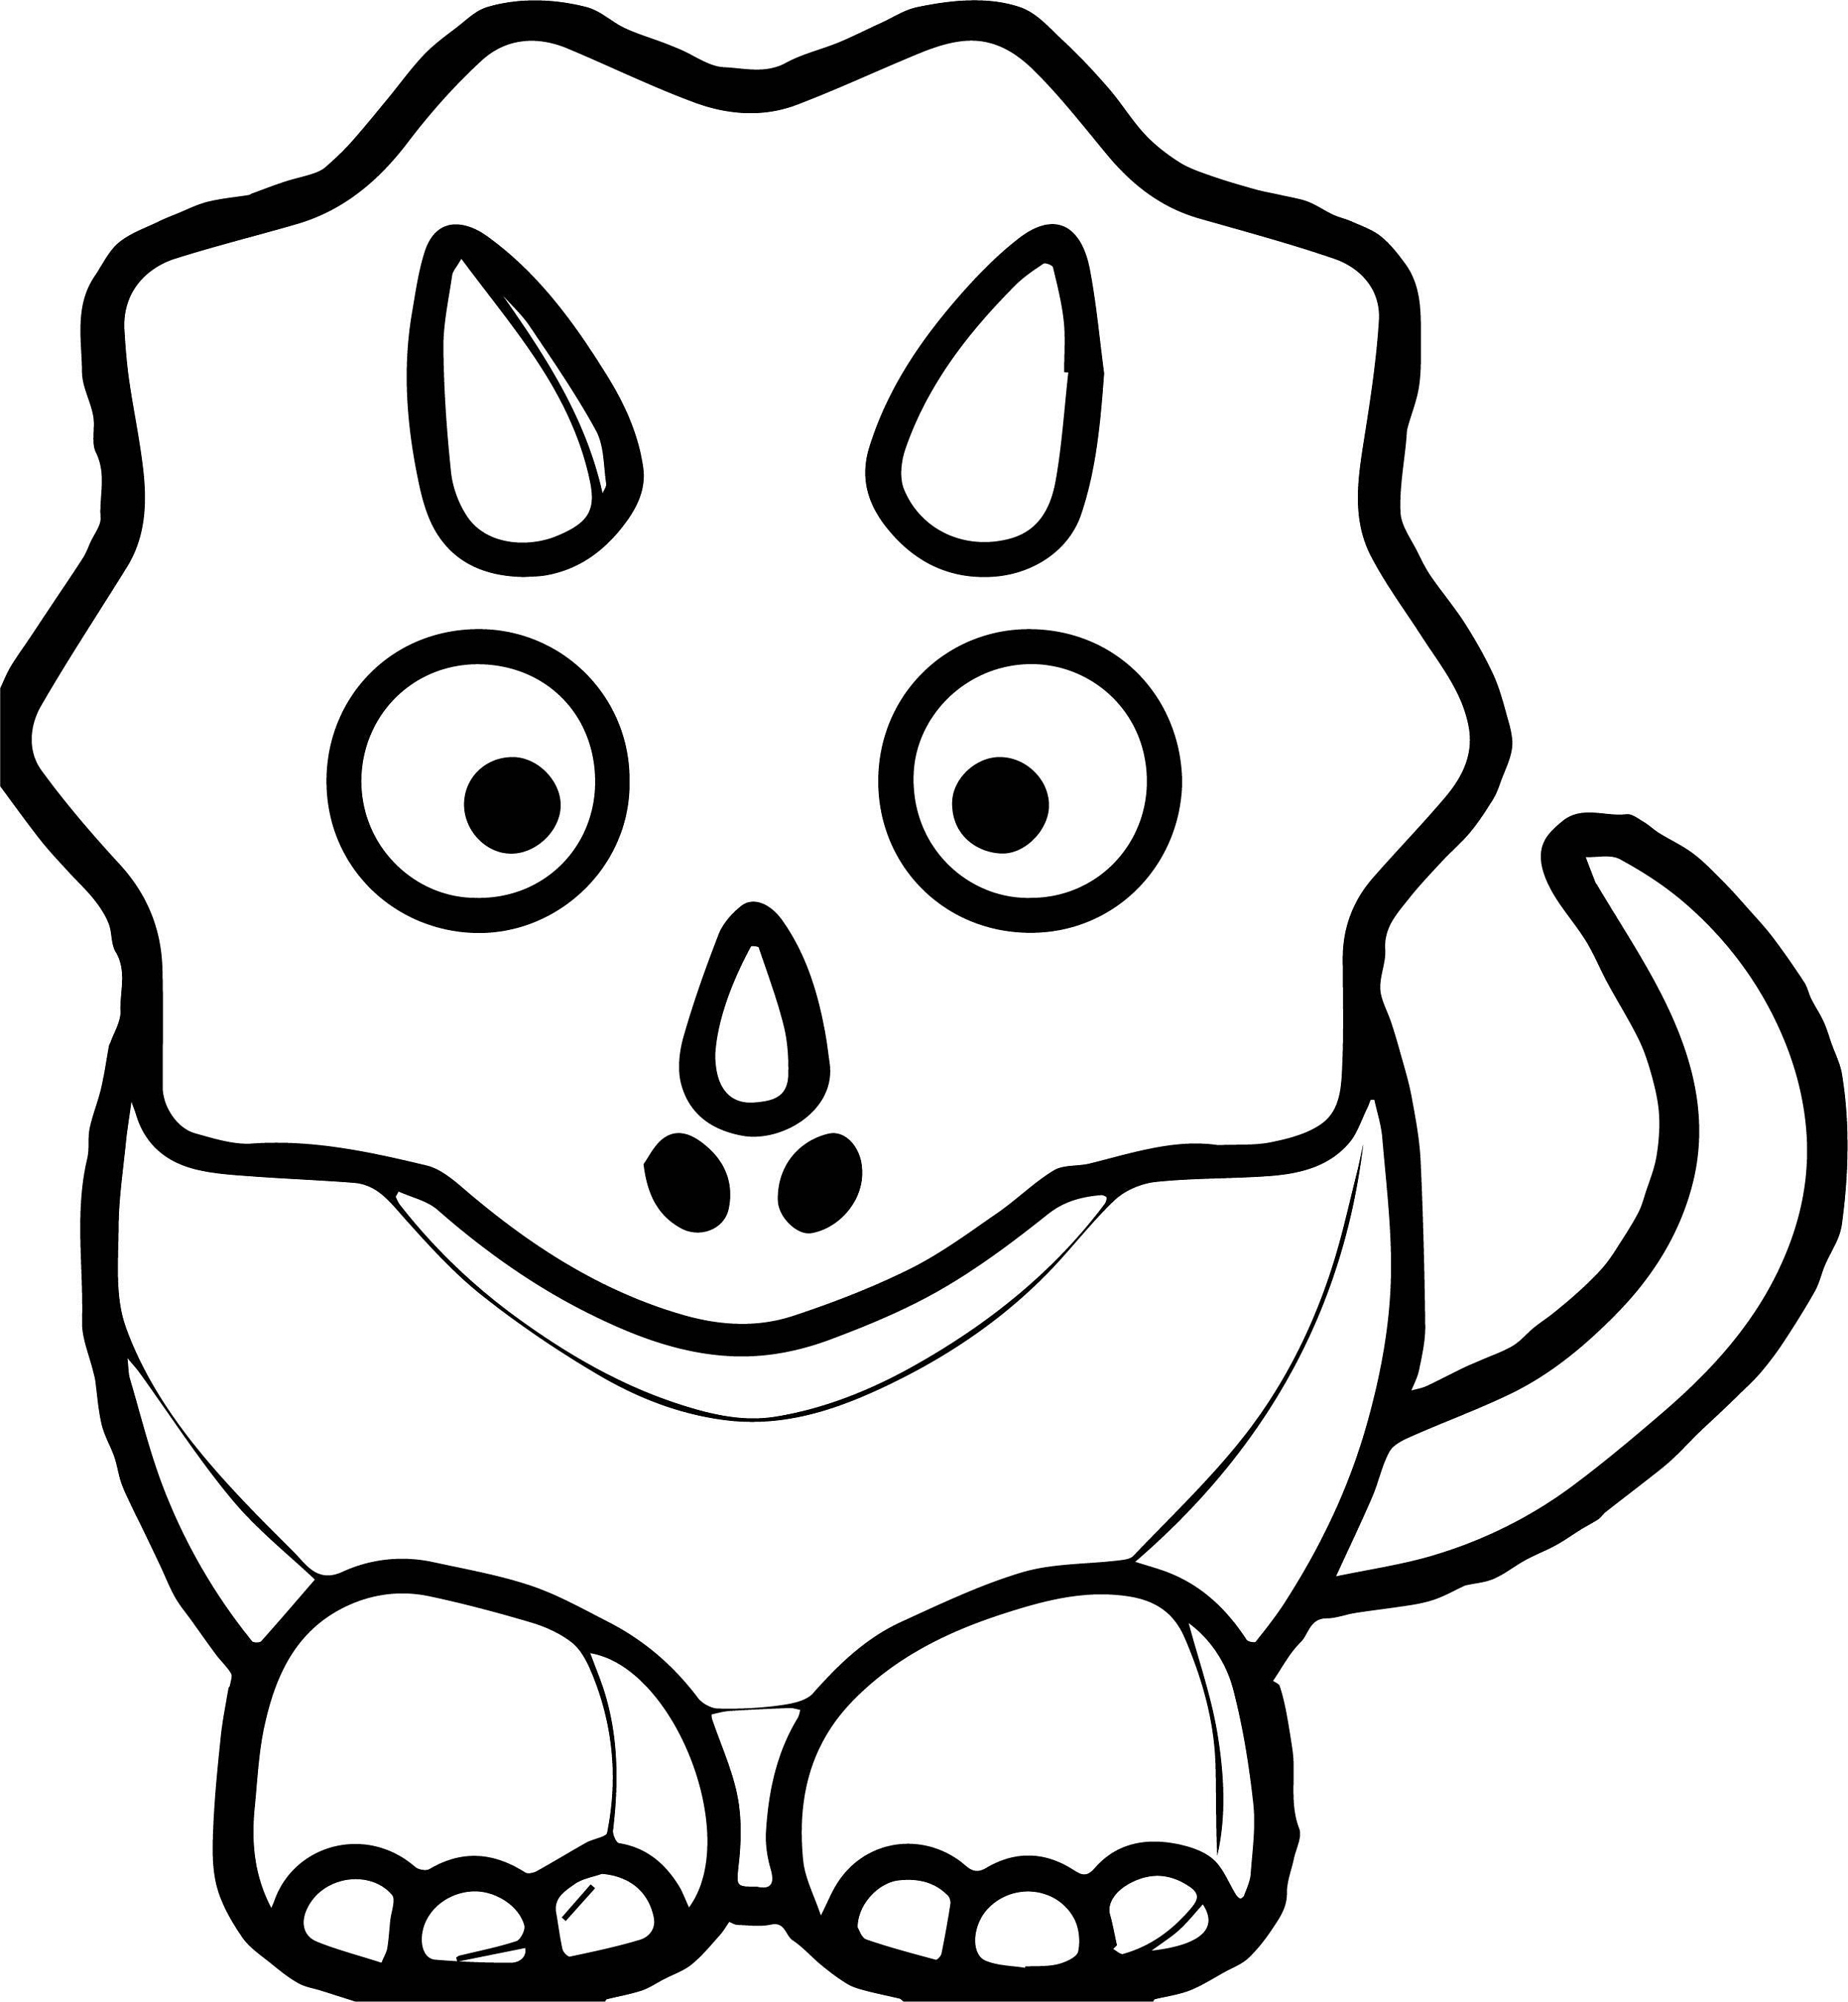 dinosaurs color pages print download dinosaur t rex coloring pages for kids dinosaurs color pages